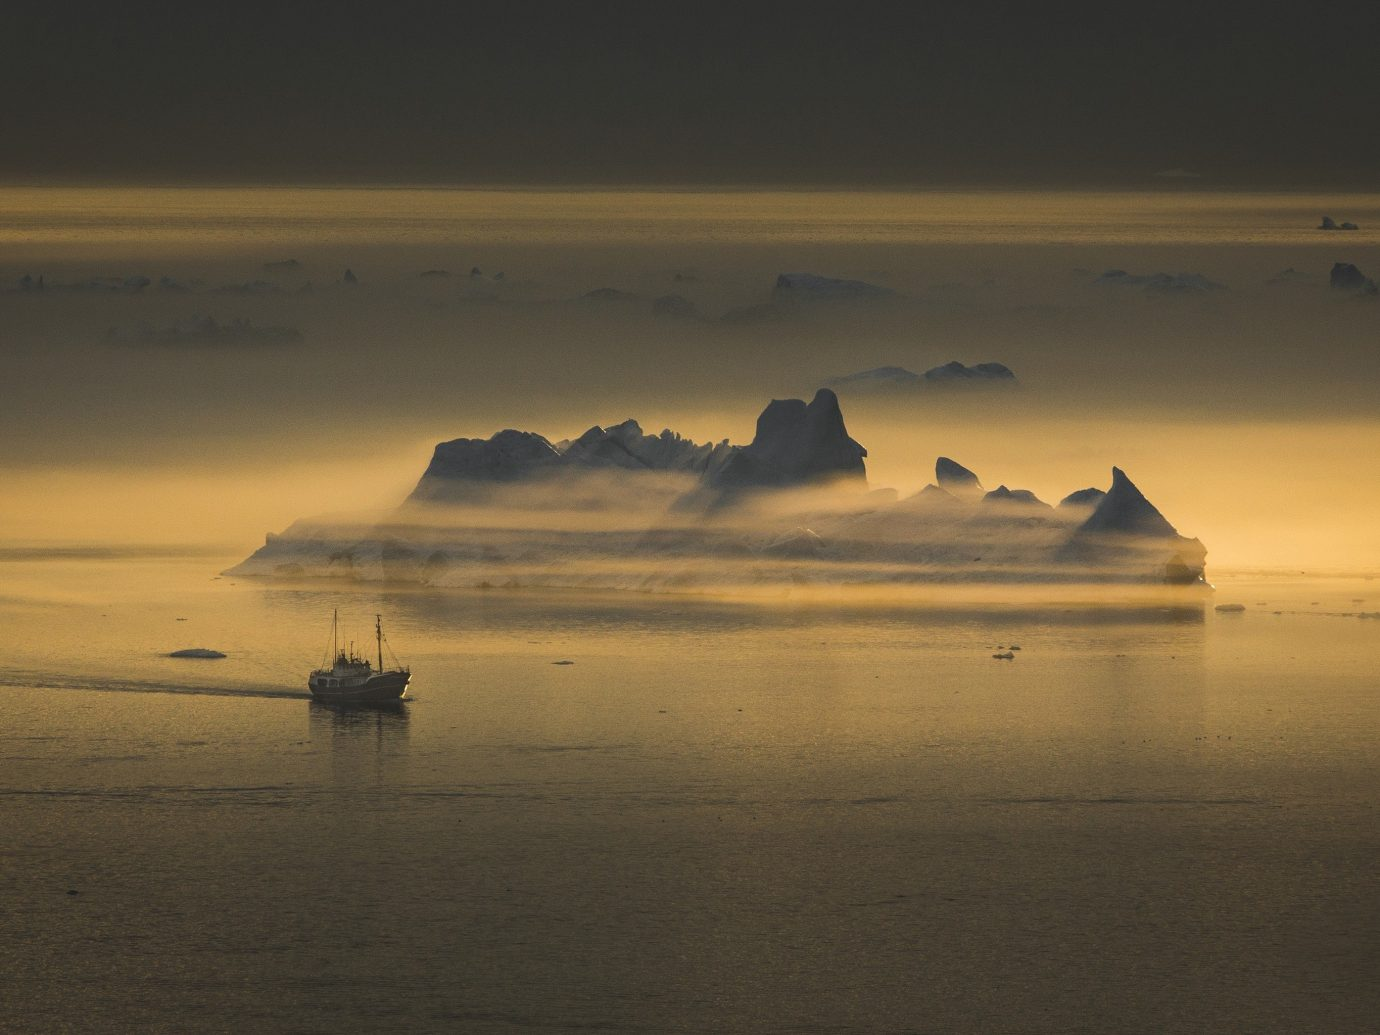 A fishing vessel passes an iceberg near the Ilulissat ice fjord